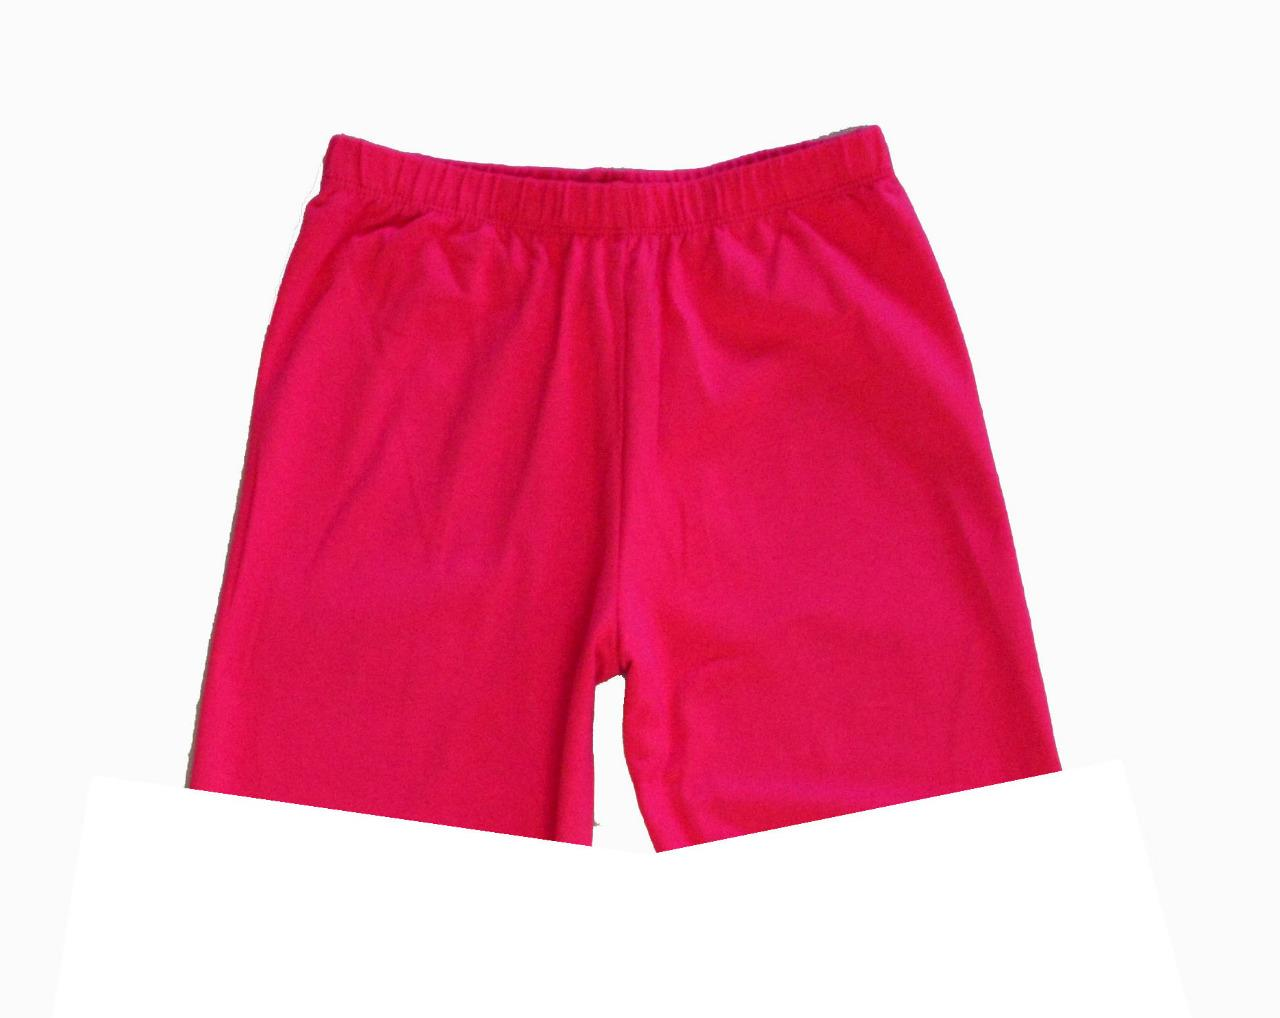 Slip on any biker shorts for girls under her pretty little sundress for more coverage for her and less worry for you. With fun colors and exciting prints, you'll find shorts to match any outfit. When she starts getting fussy under the sun, slip her out of that dress and into a cute top.